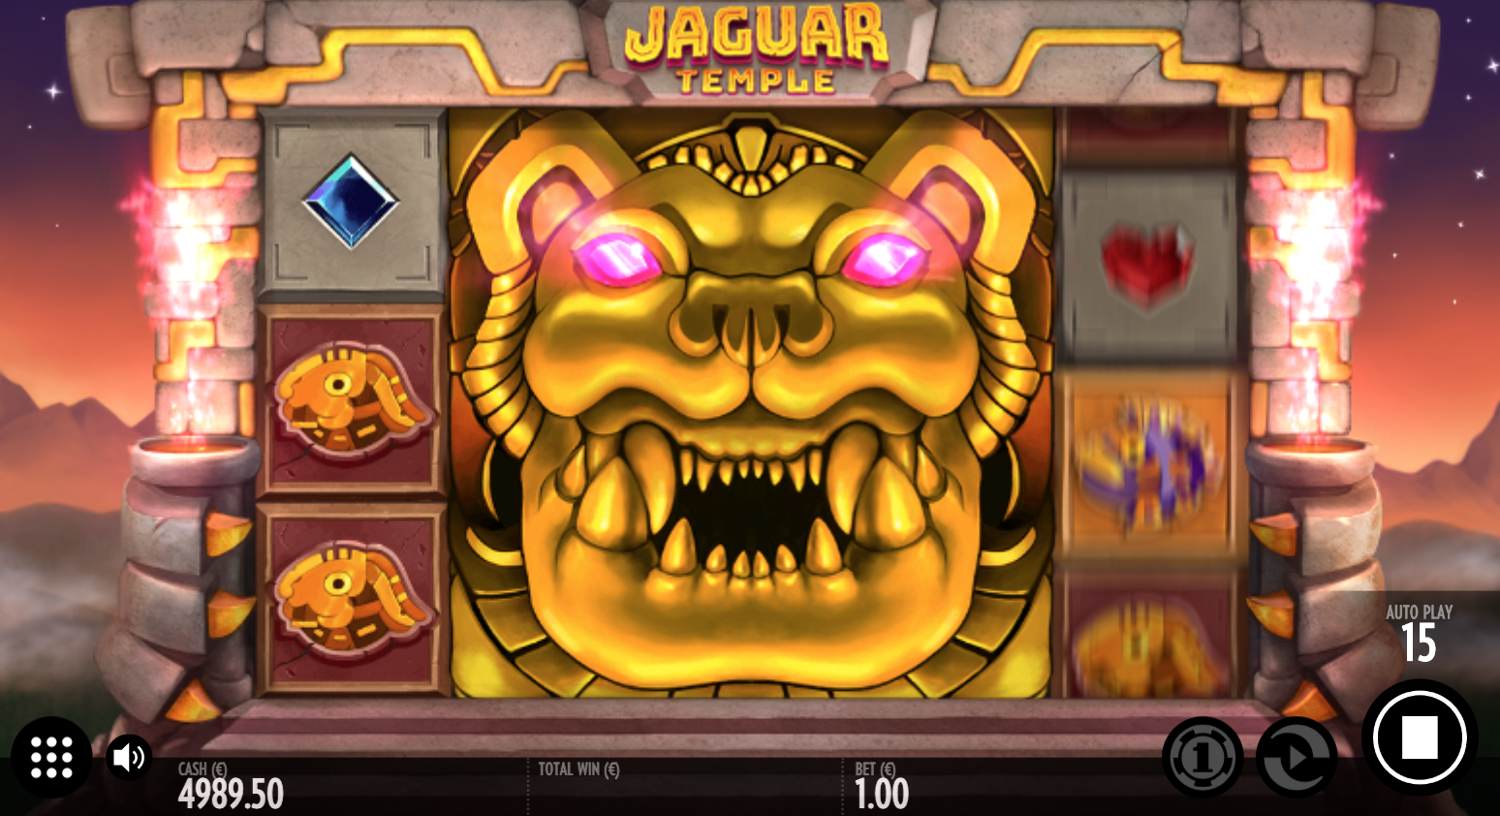 Jaguar Temple big 3x3 bonus symbol